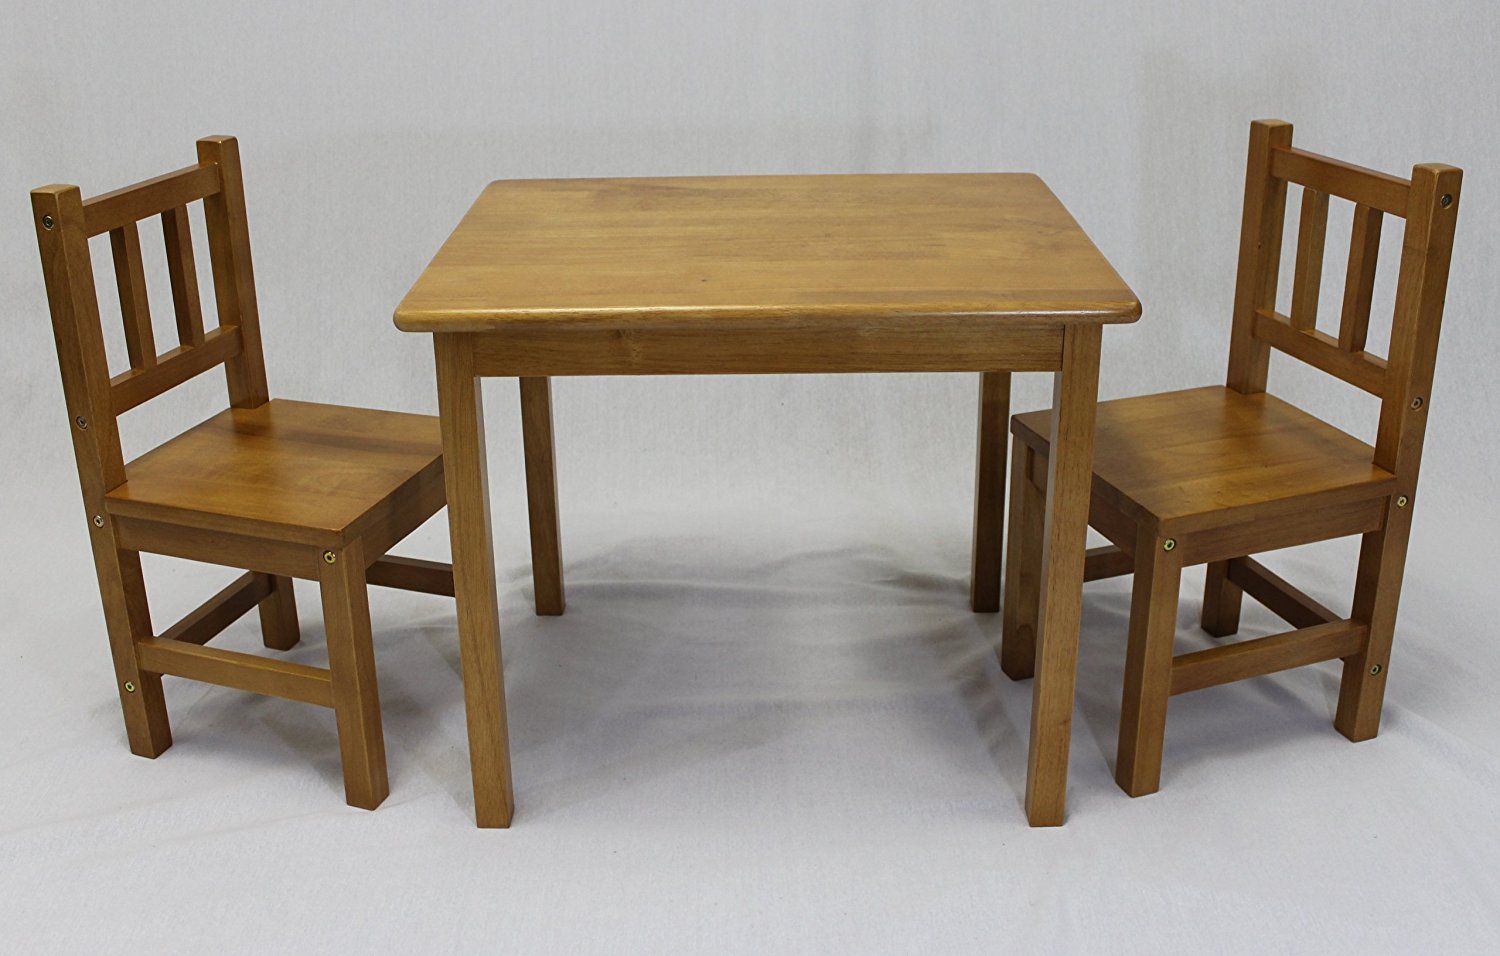 Table With 2 Chairs Ehemco Kids Table And 2 Chairs Set In Honey Oak